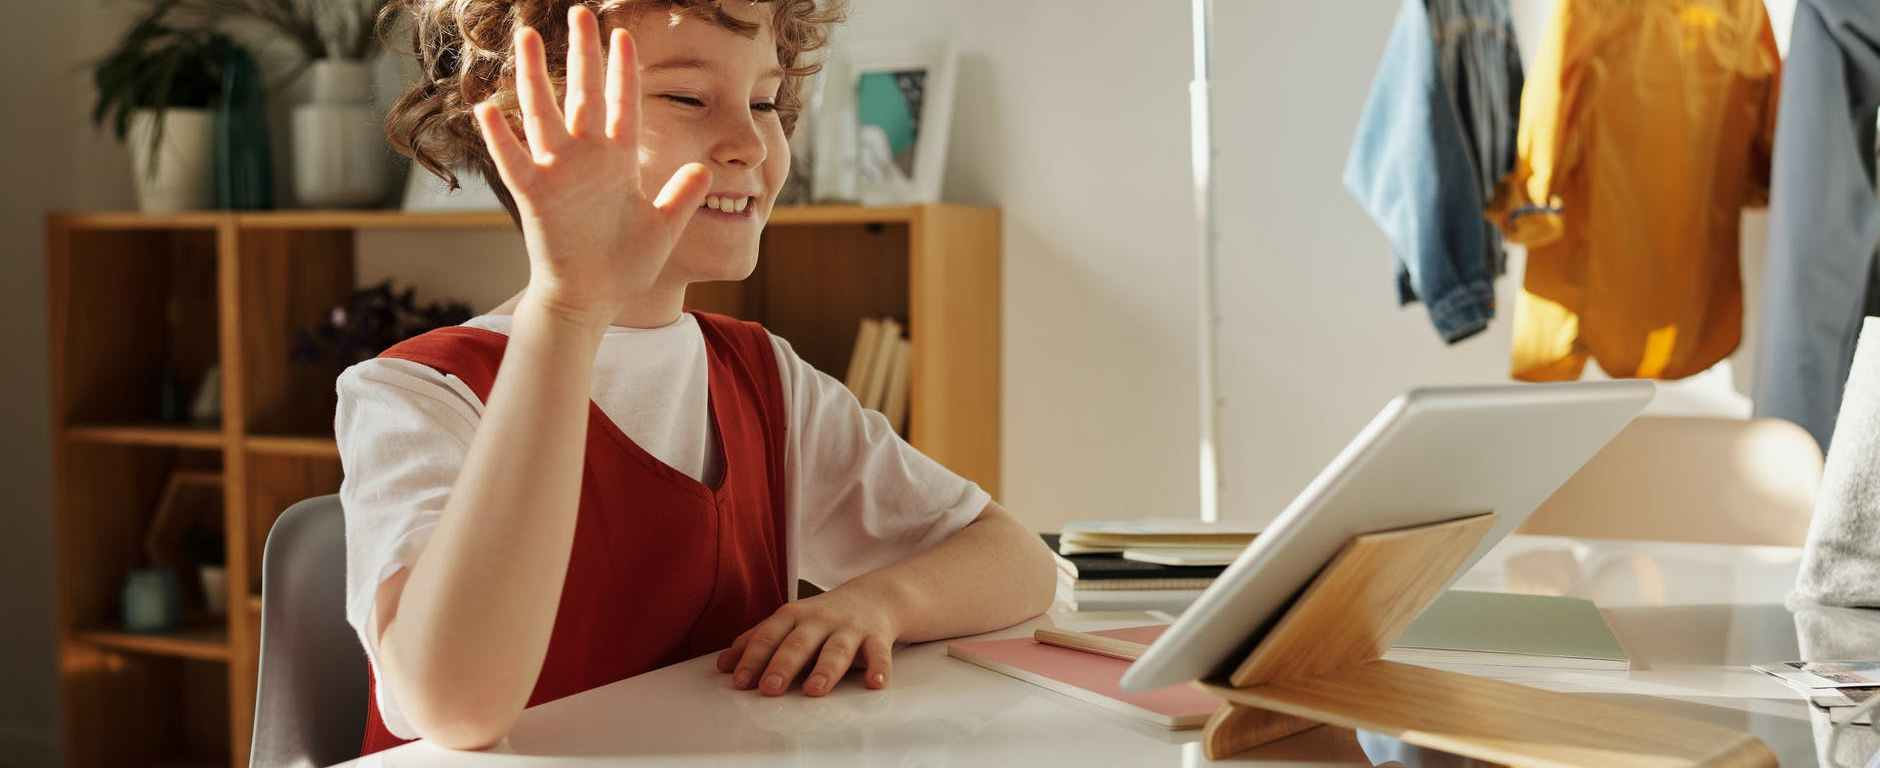 photo of child smiling while using tablet computer